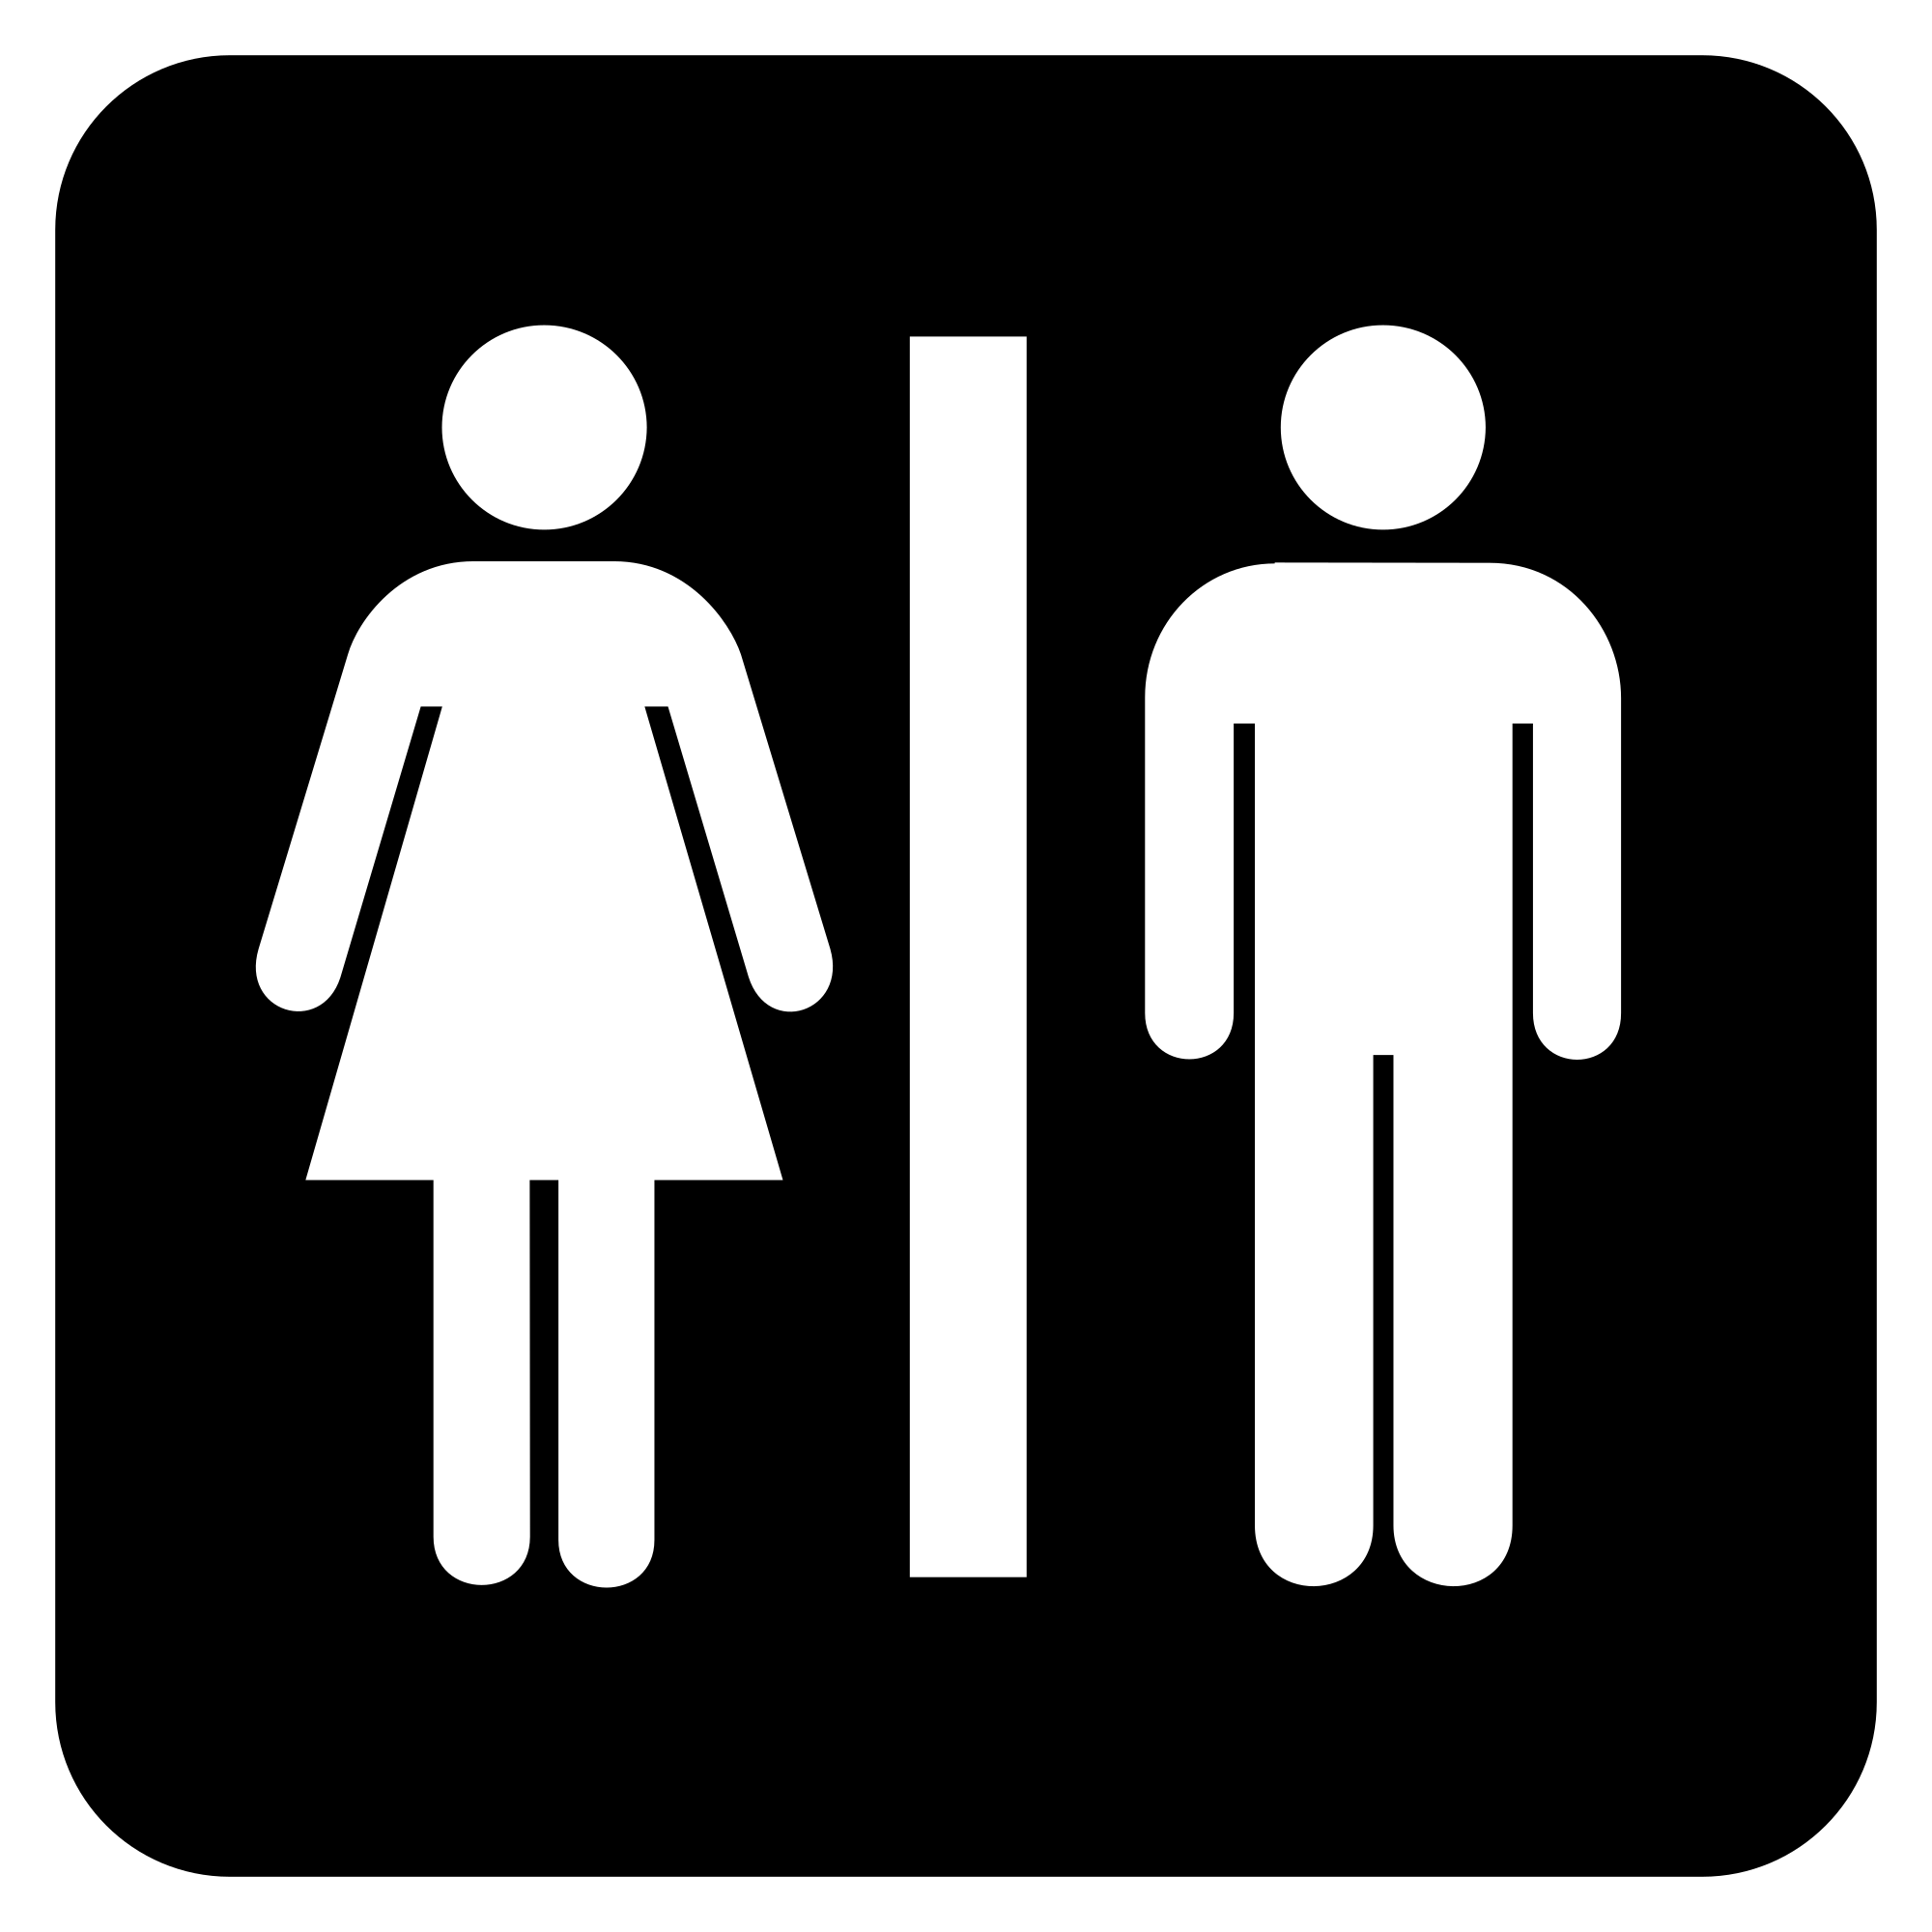 Toilet svg #435, Download drawings